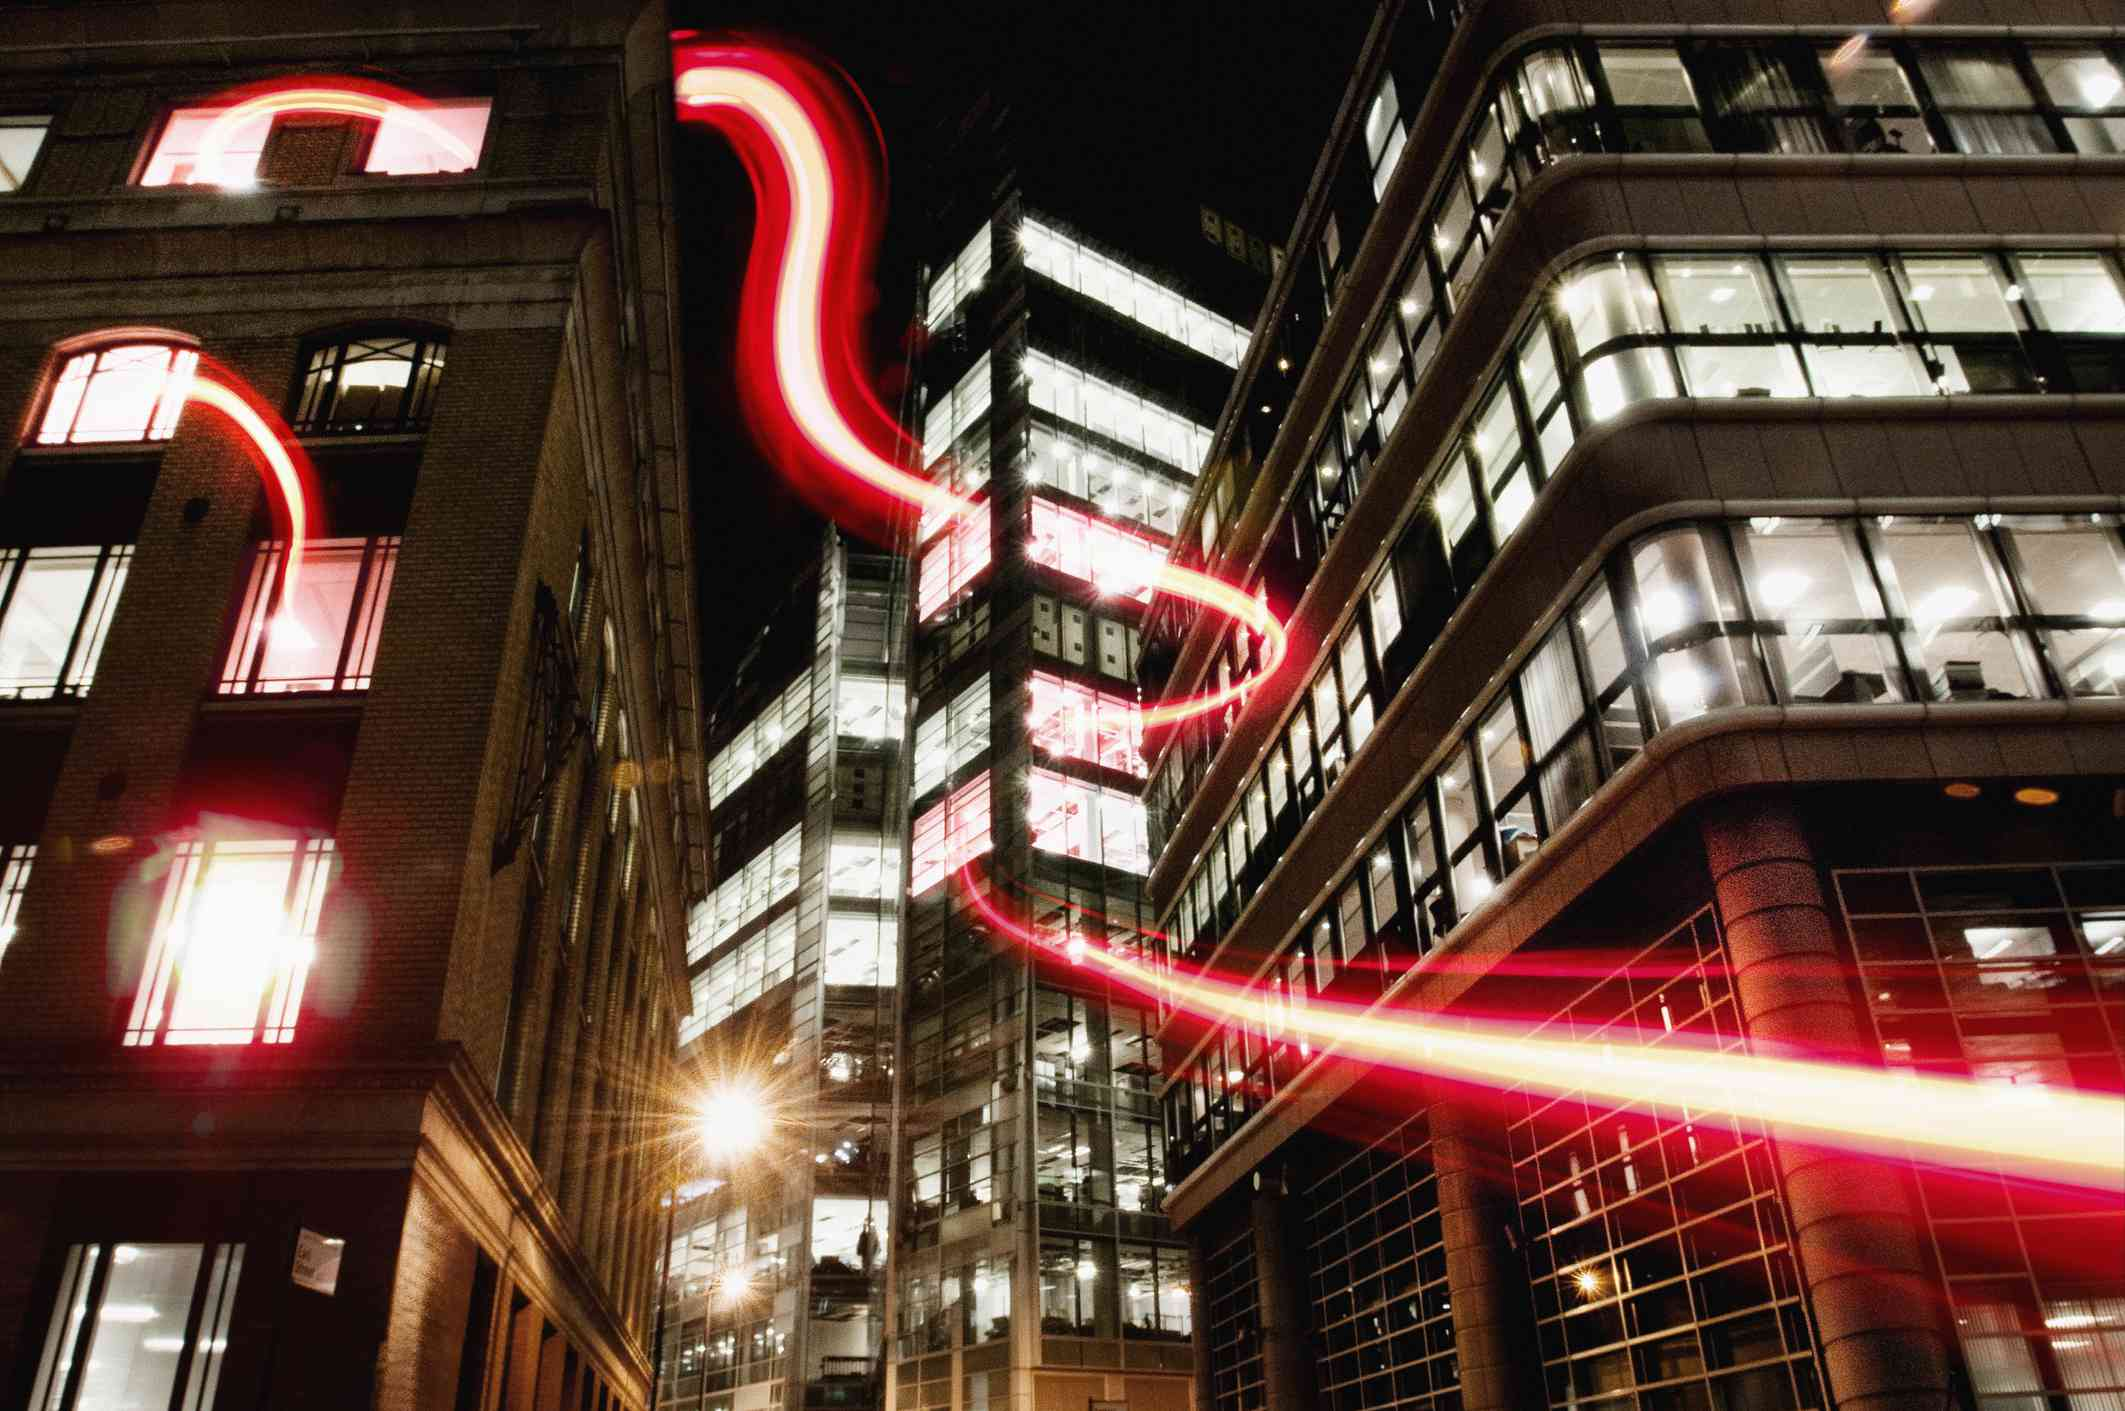 connection with red dynamic fibre optic light trail